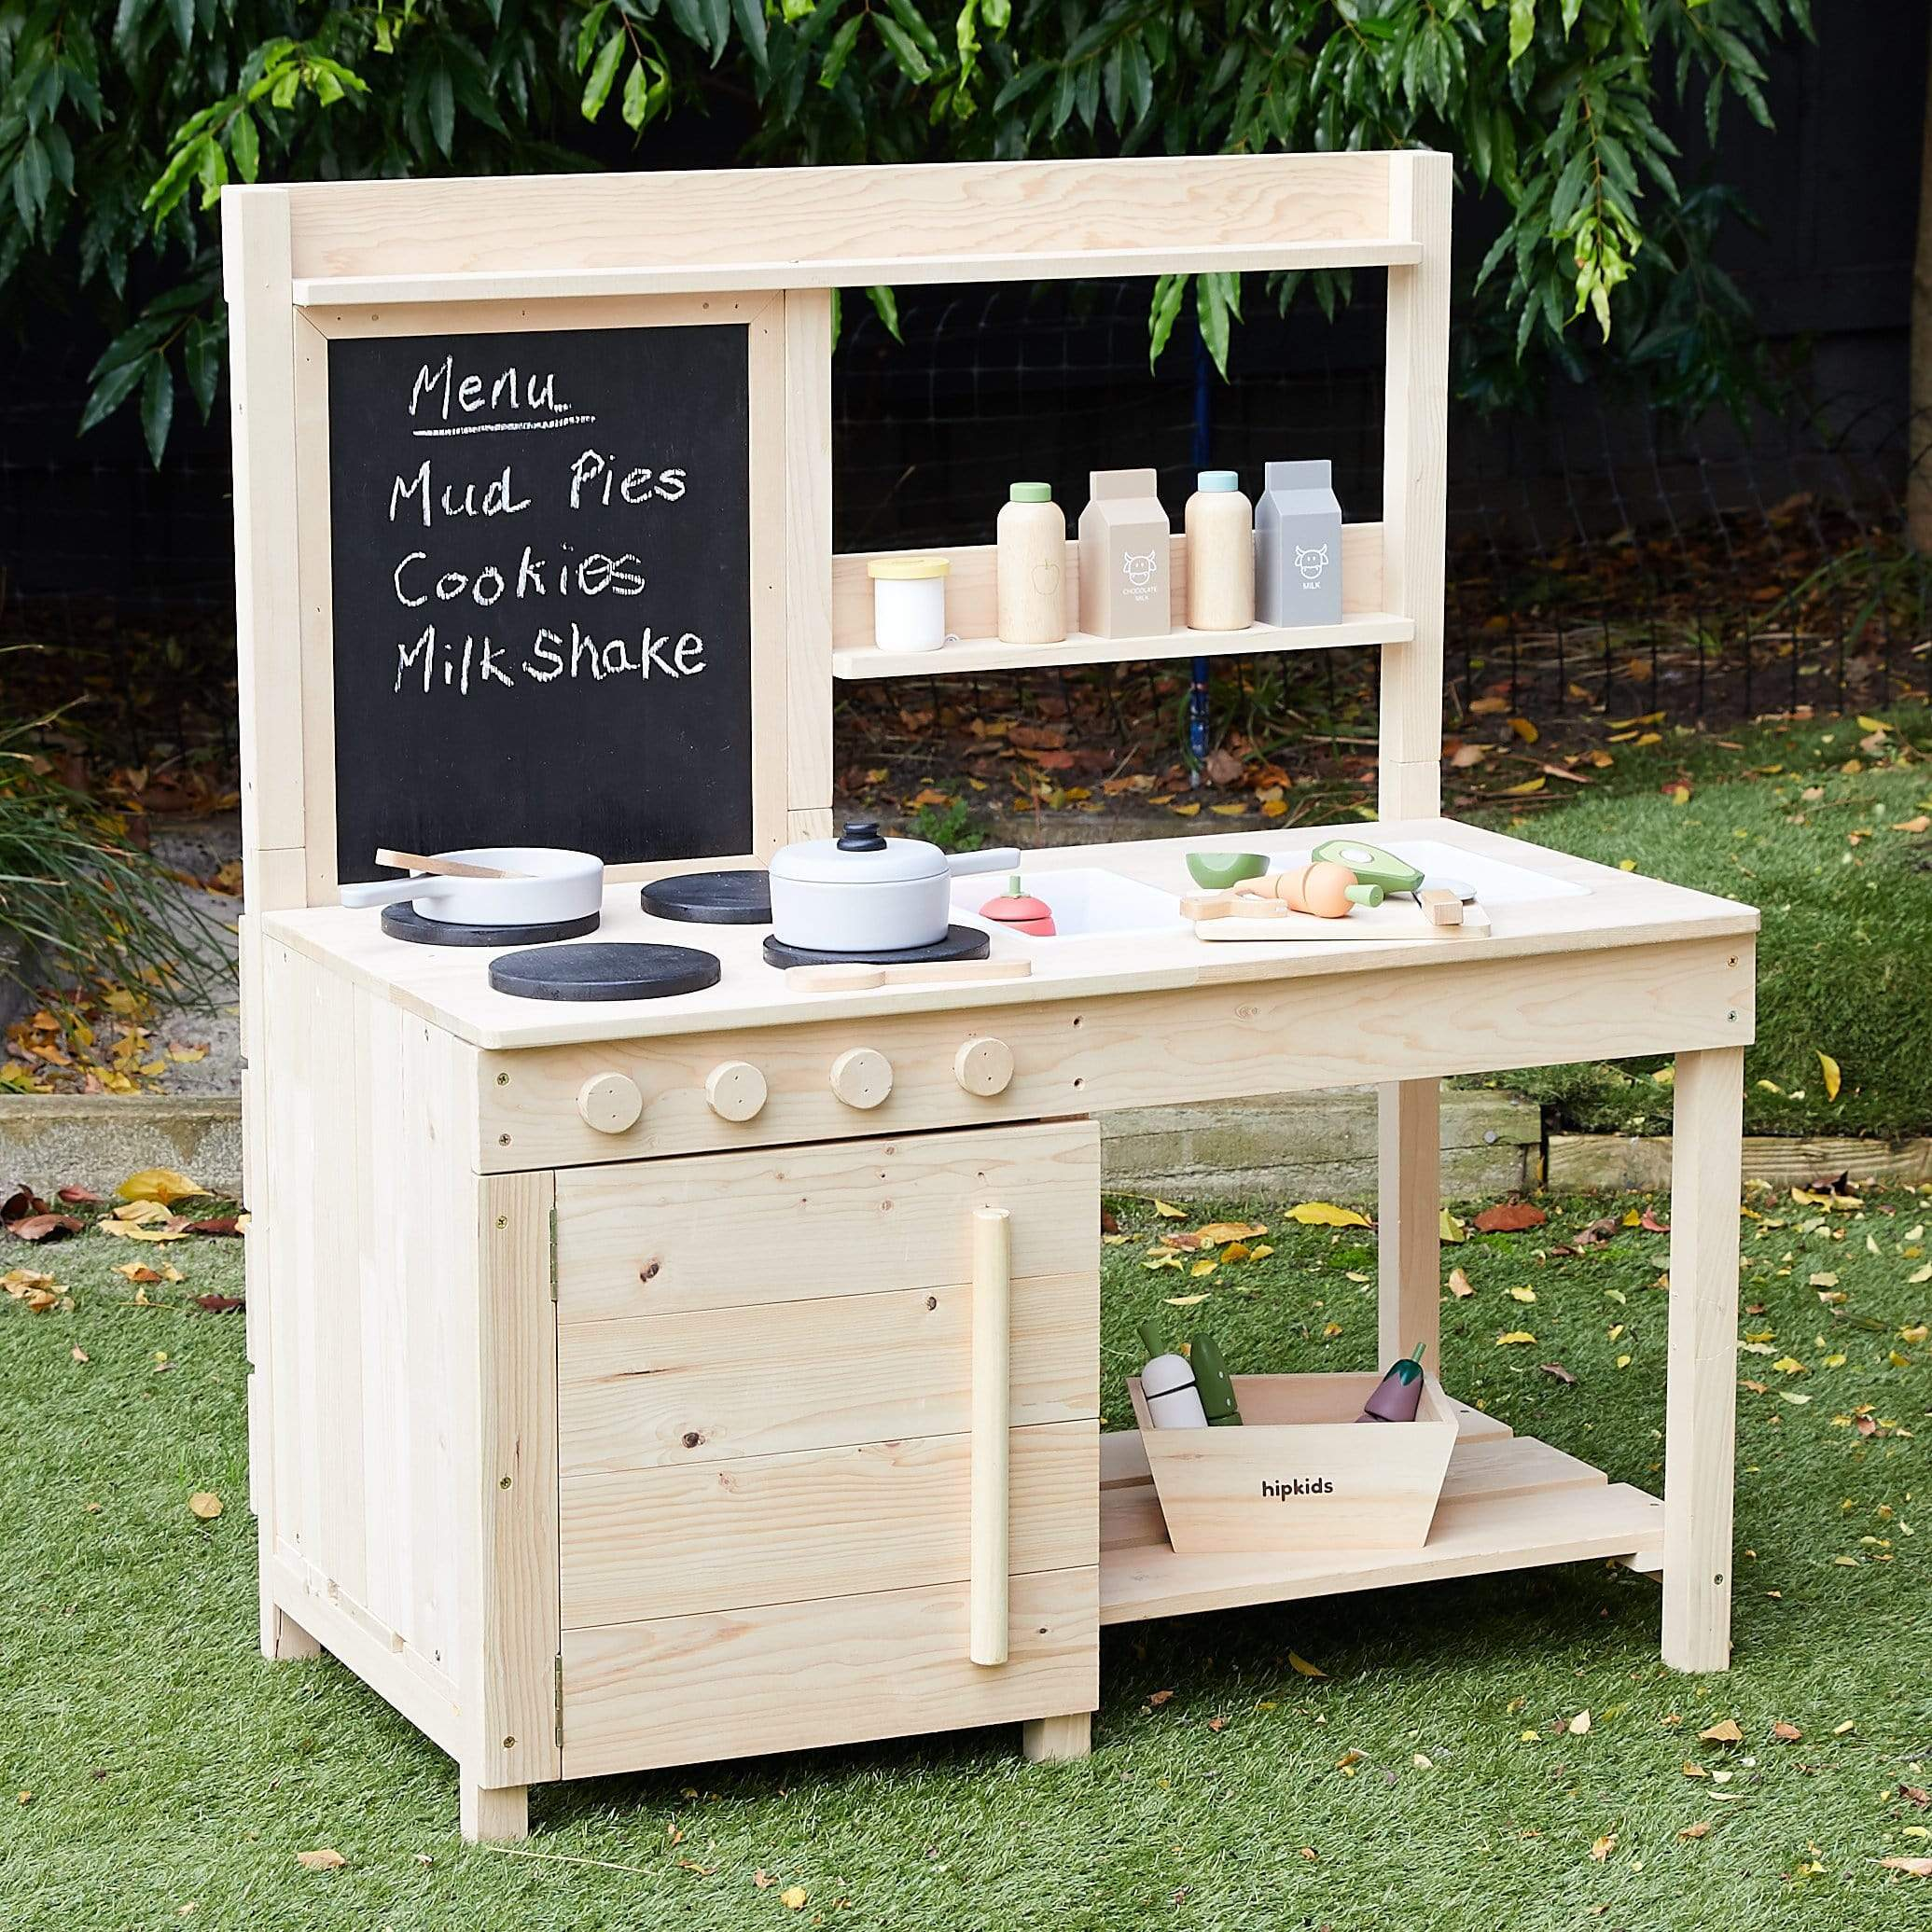 outdoor kitchen for kids in the backyard